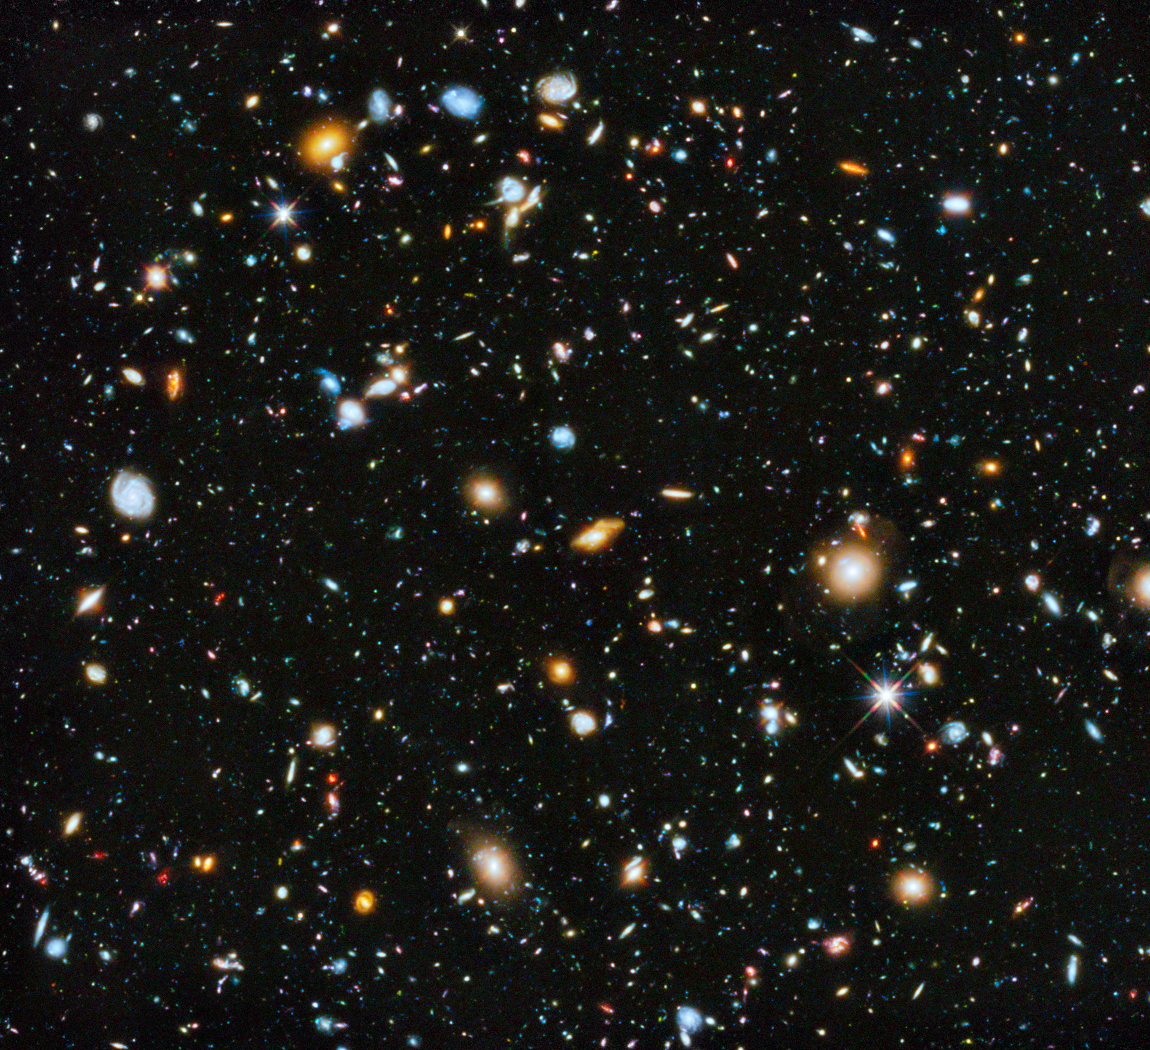 Hubble's Ultra-Deep Field image (full range of ultraviolet to near-infrared light) – made from 841 orbits of telescope viewing time – contains approximately 10,000 galaxies, including some of the most distant galaxies to have been imaged by an optical telescope, and extending back in time to within a few hundred million years of the Big Bang. Click the image for a full-screen version. Image credit: NASA, ESA, H. Teplitz and M. Rafelski/IPAC/Caltech, A. Koekemoer/STScI, R. Windhorst/Arizona State University, and Z. Levay/STScI